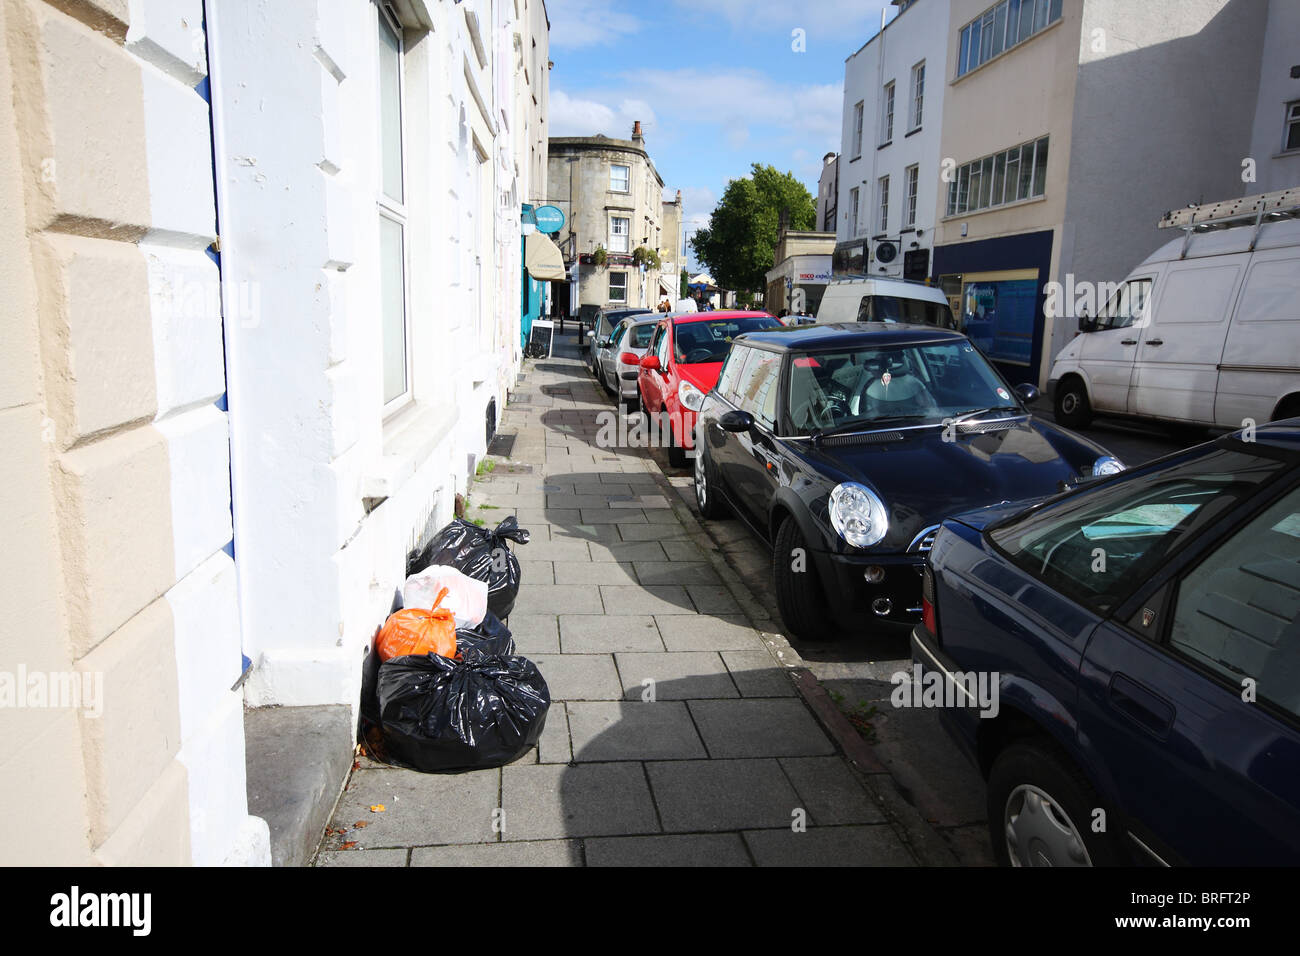 Rubbish bags on pavement outside house in Bristol street - Stock Image